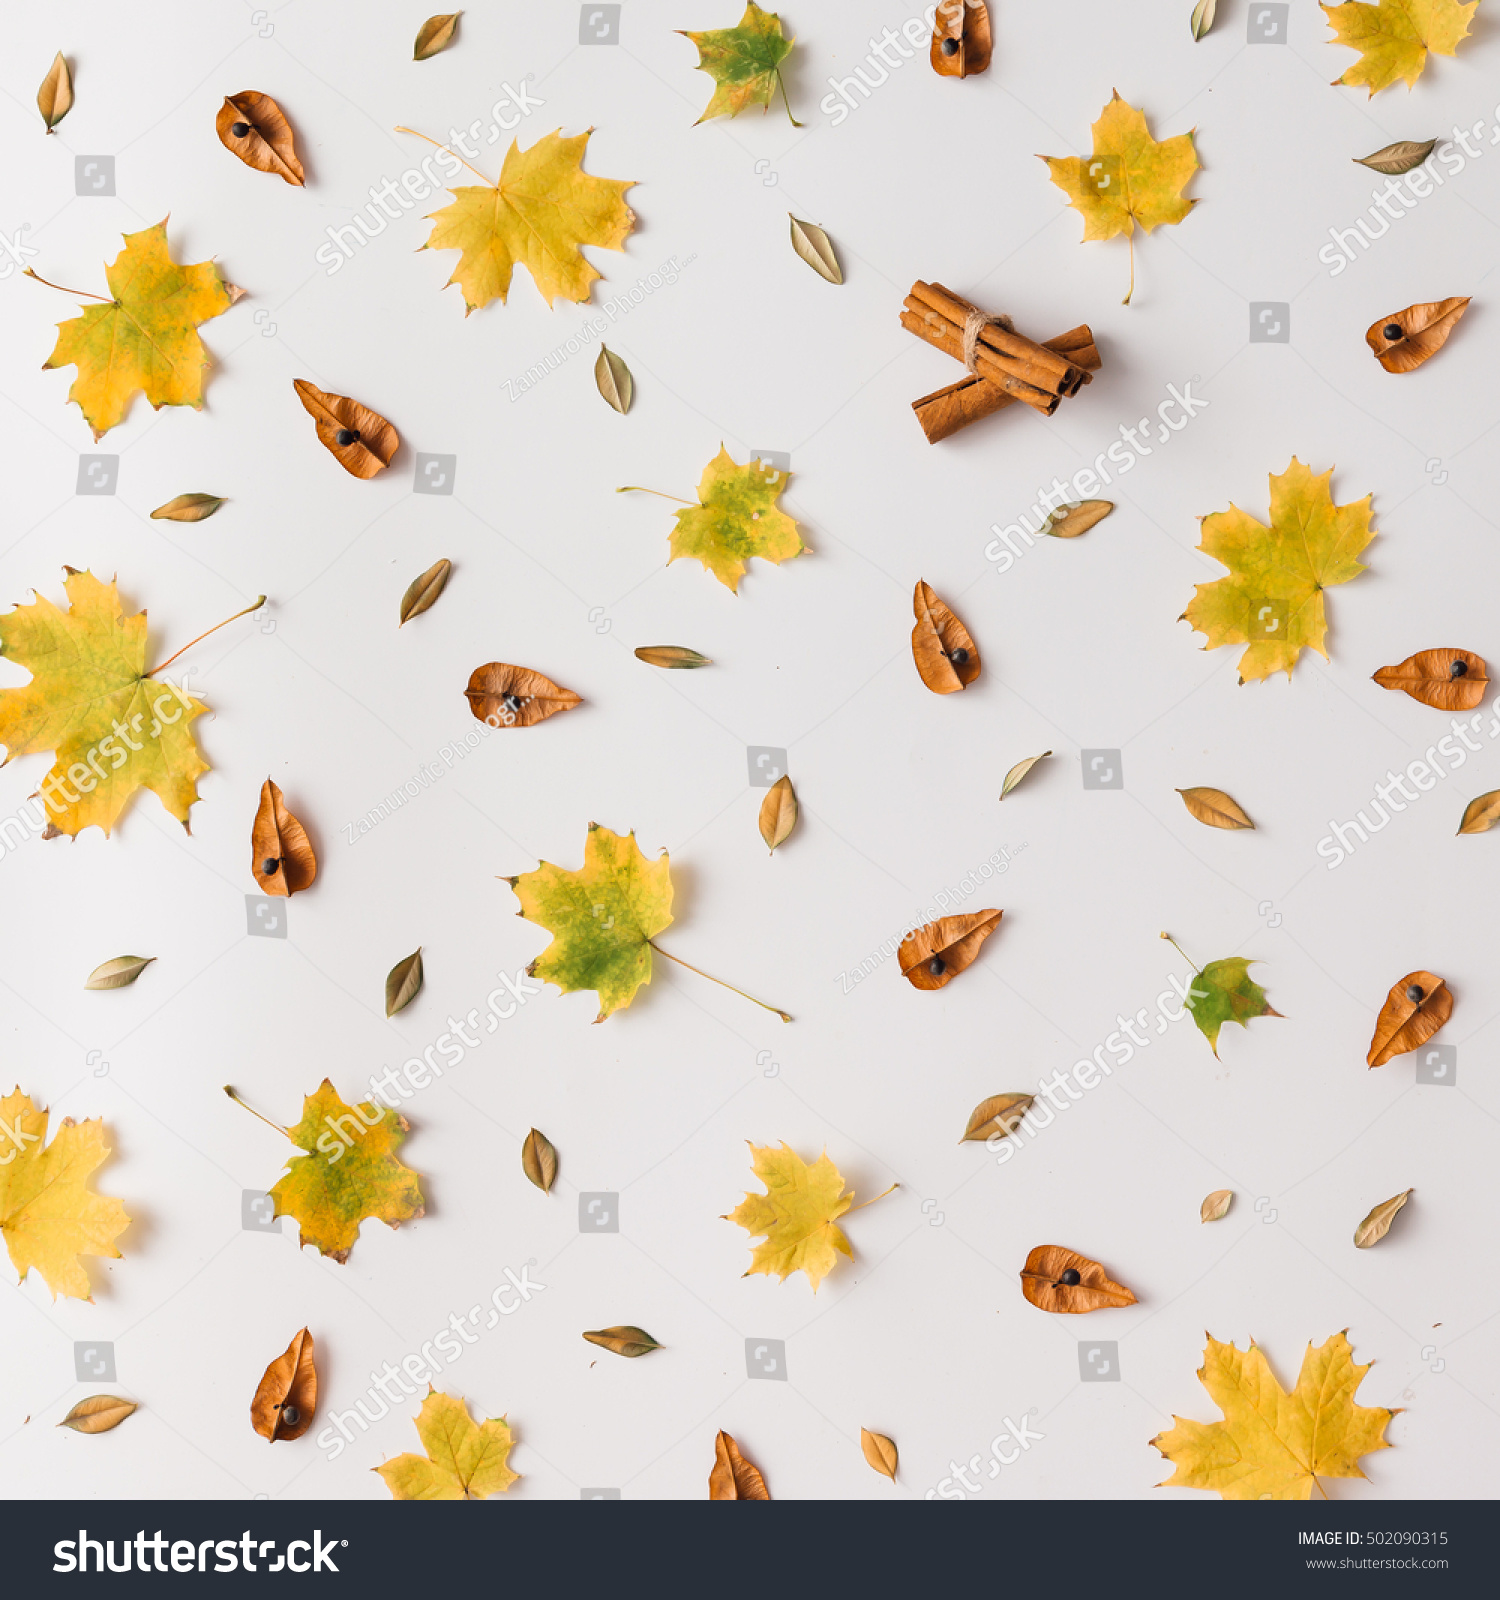 Autumn leaves pattern on white background Flat lay